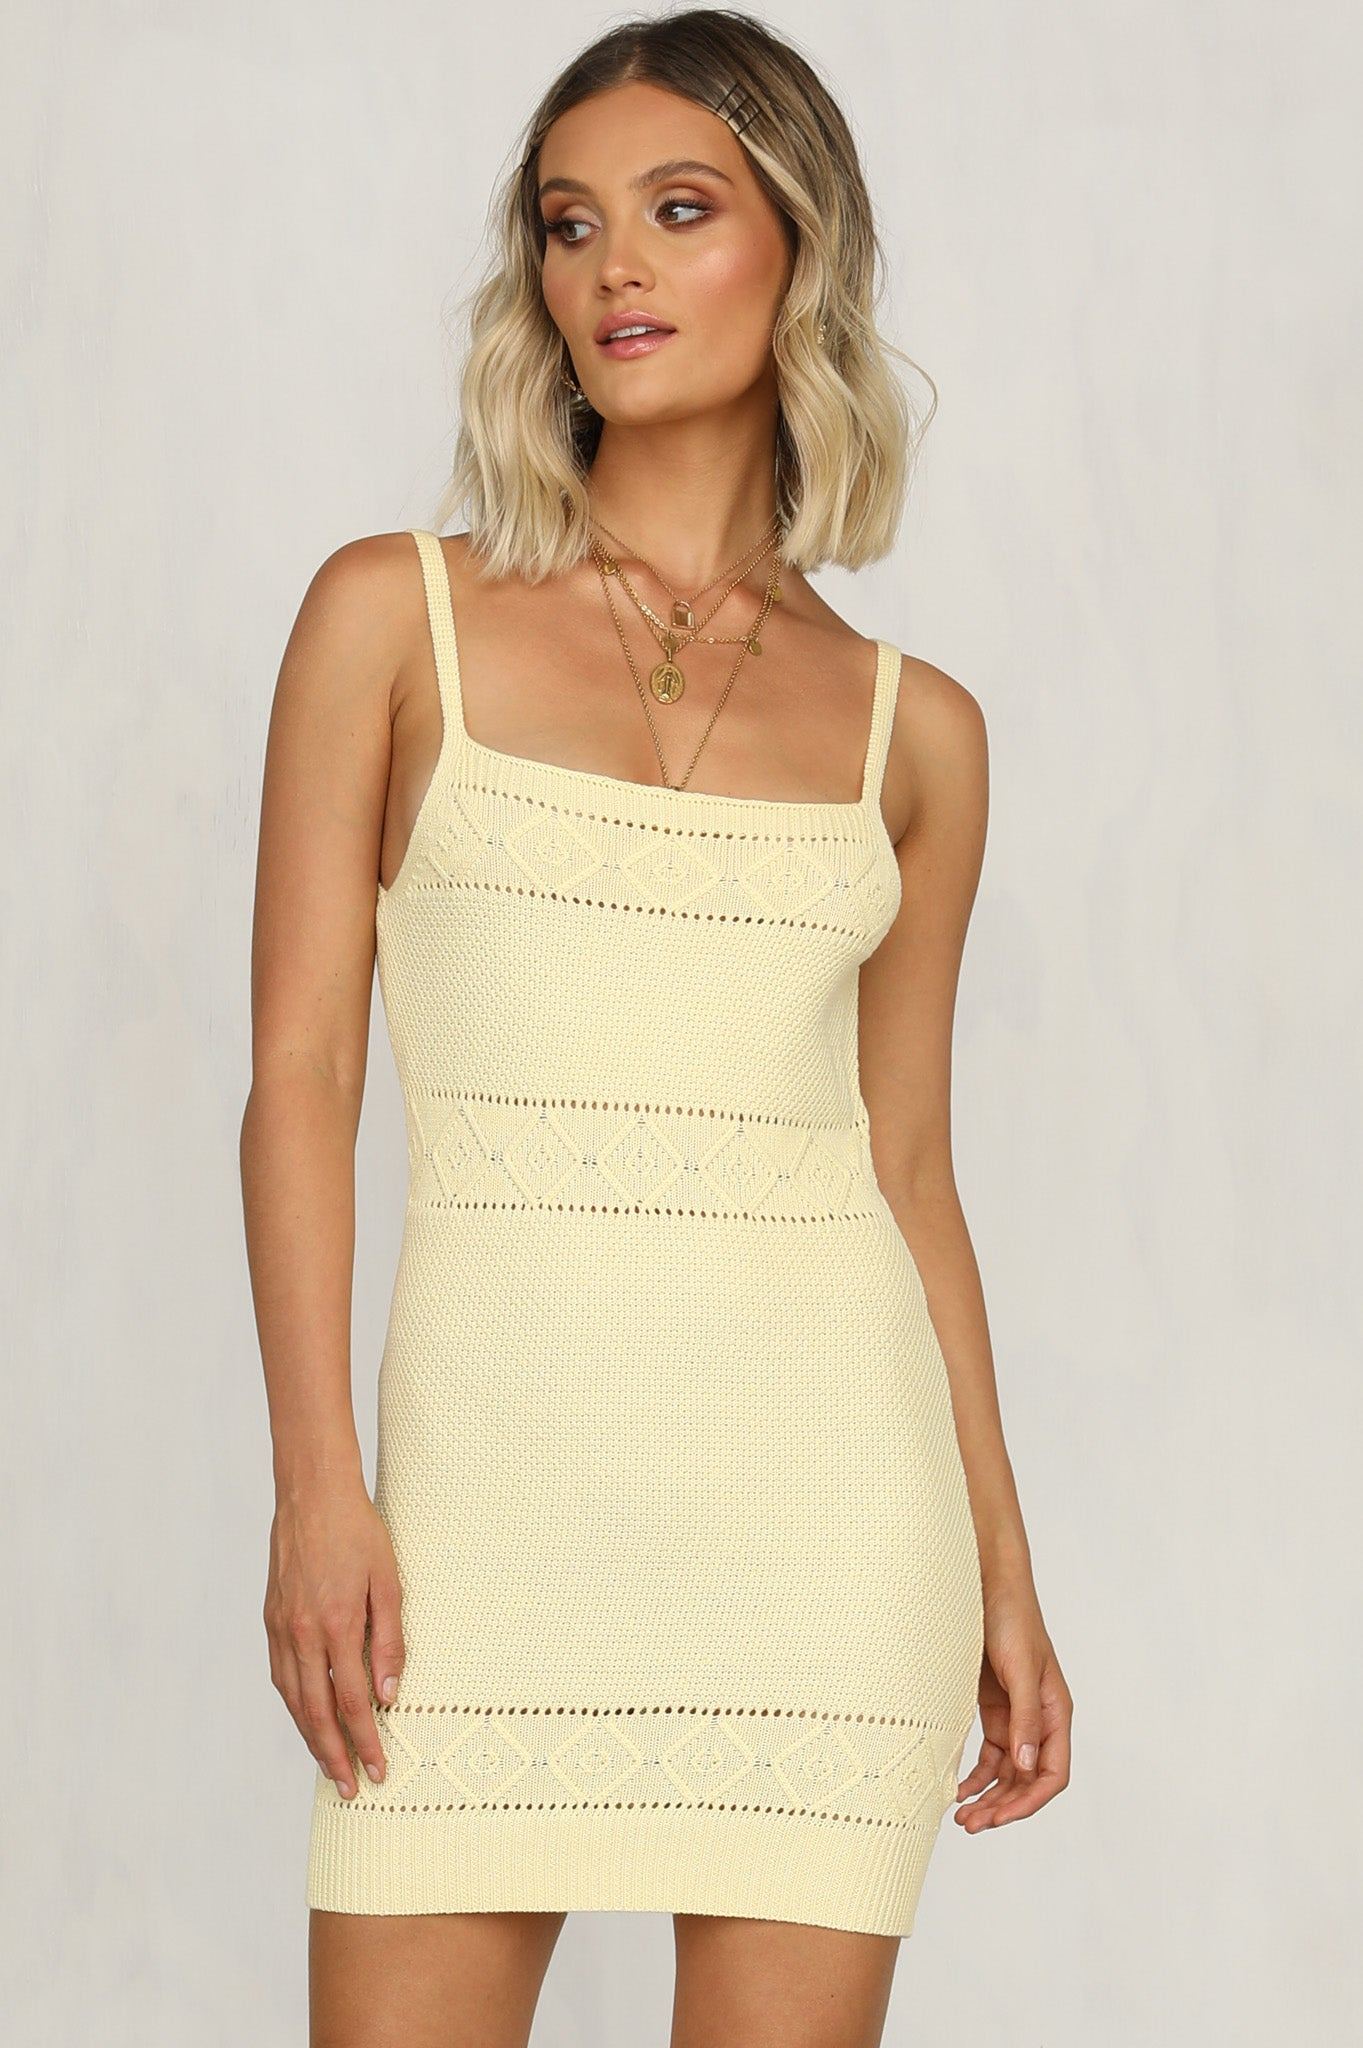 Rose Knit Dress (Lemon)